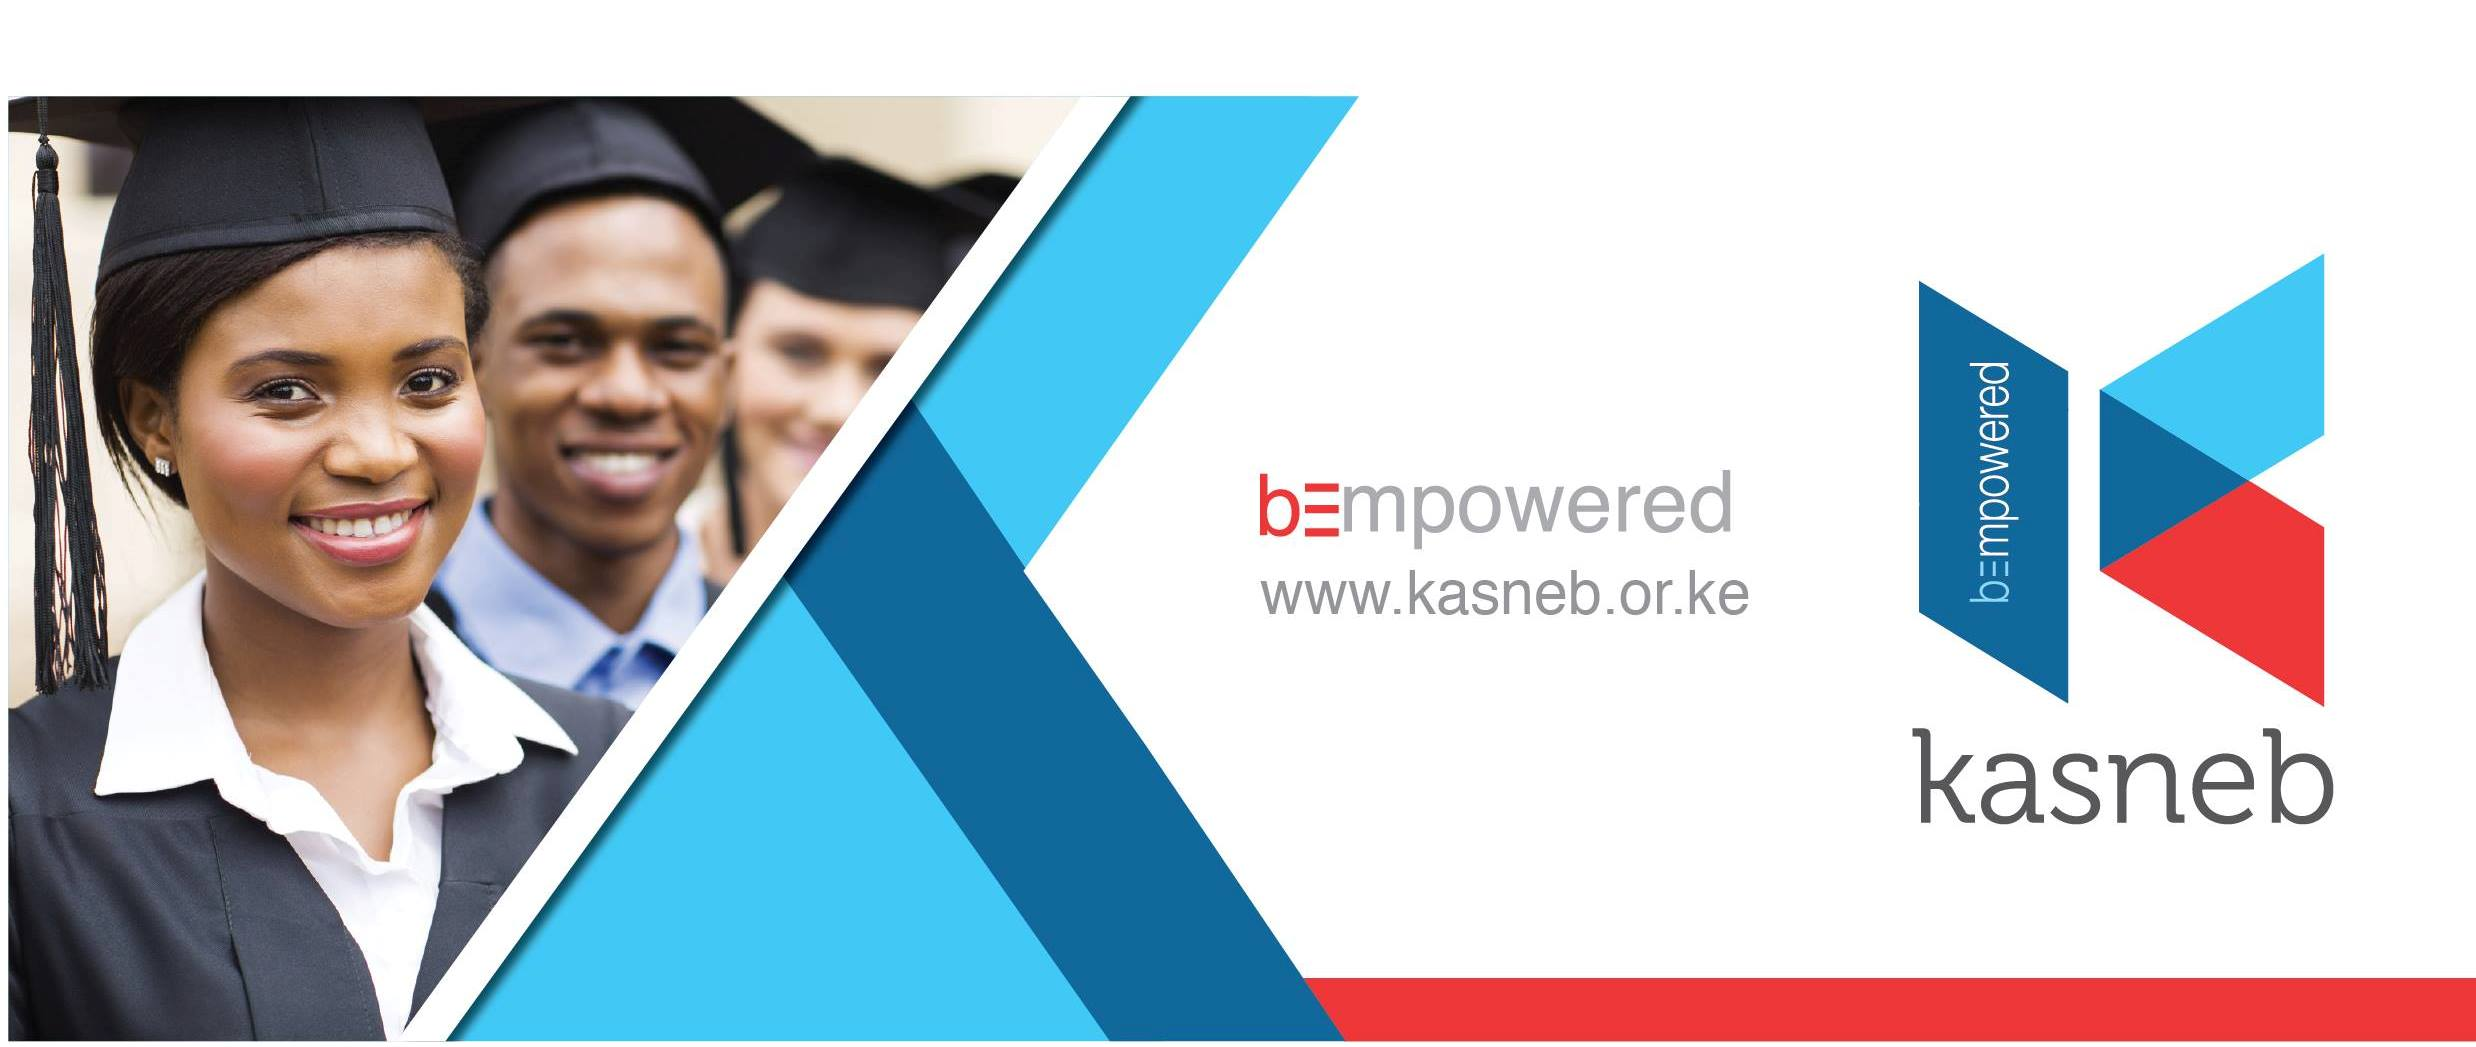 KASNEB Registration Deadline 2018: Notice for November 2018 Examinations and Collection of Certificates